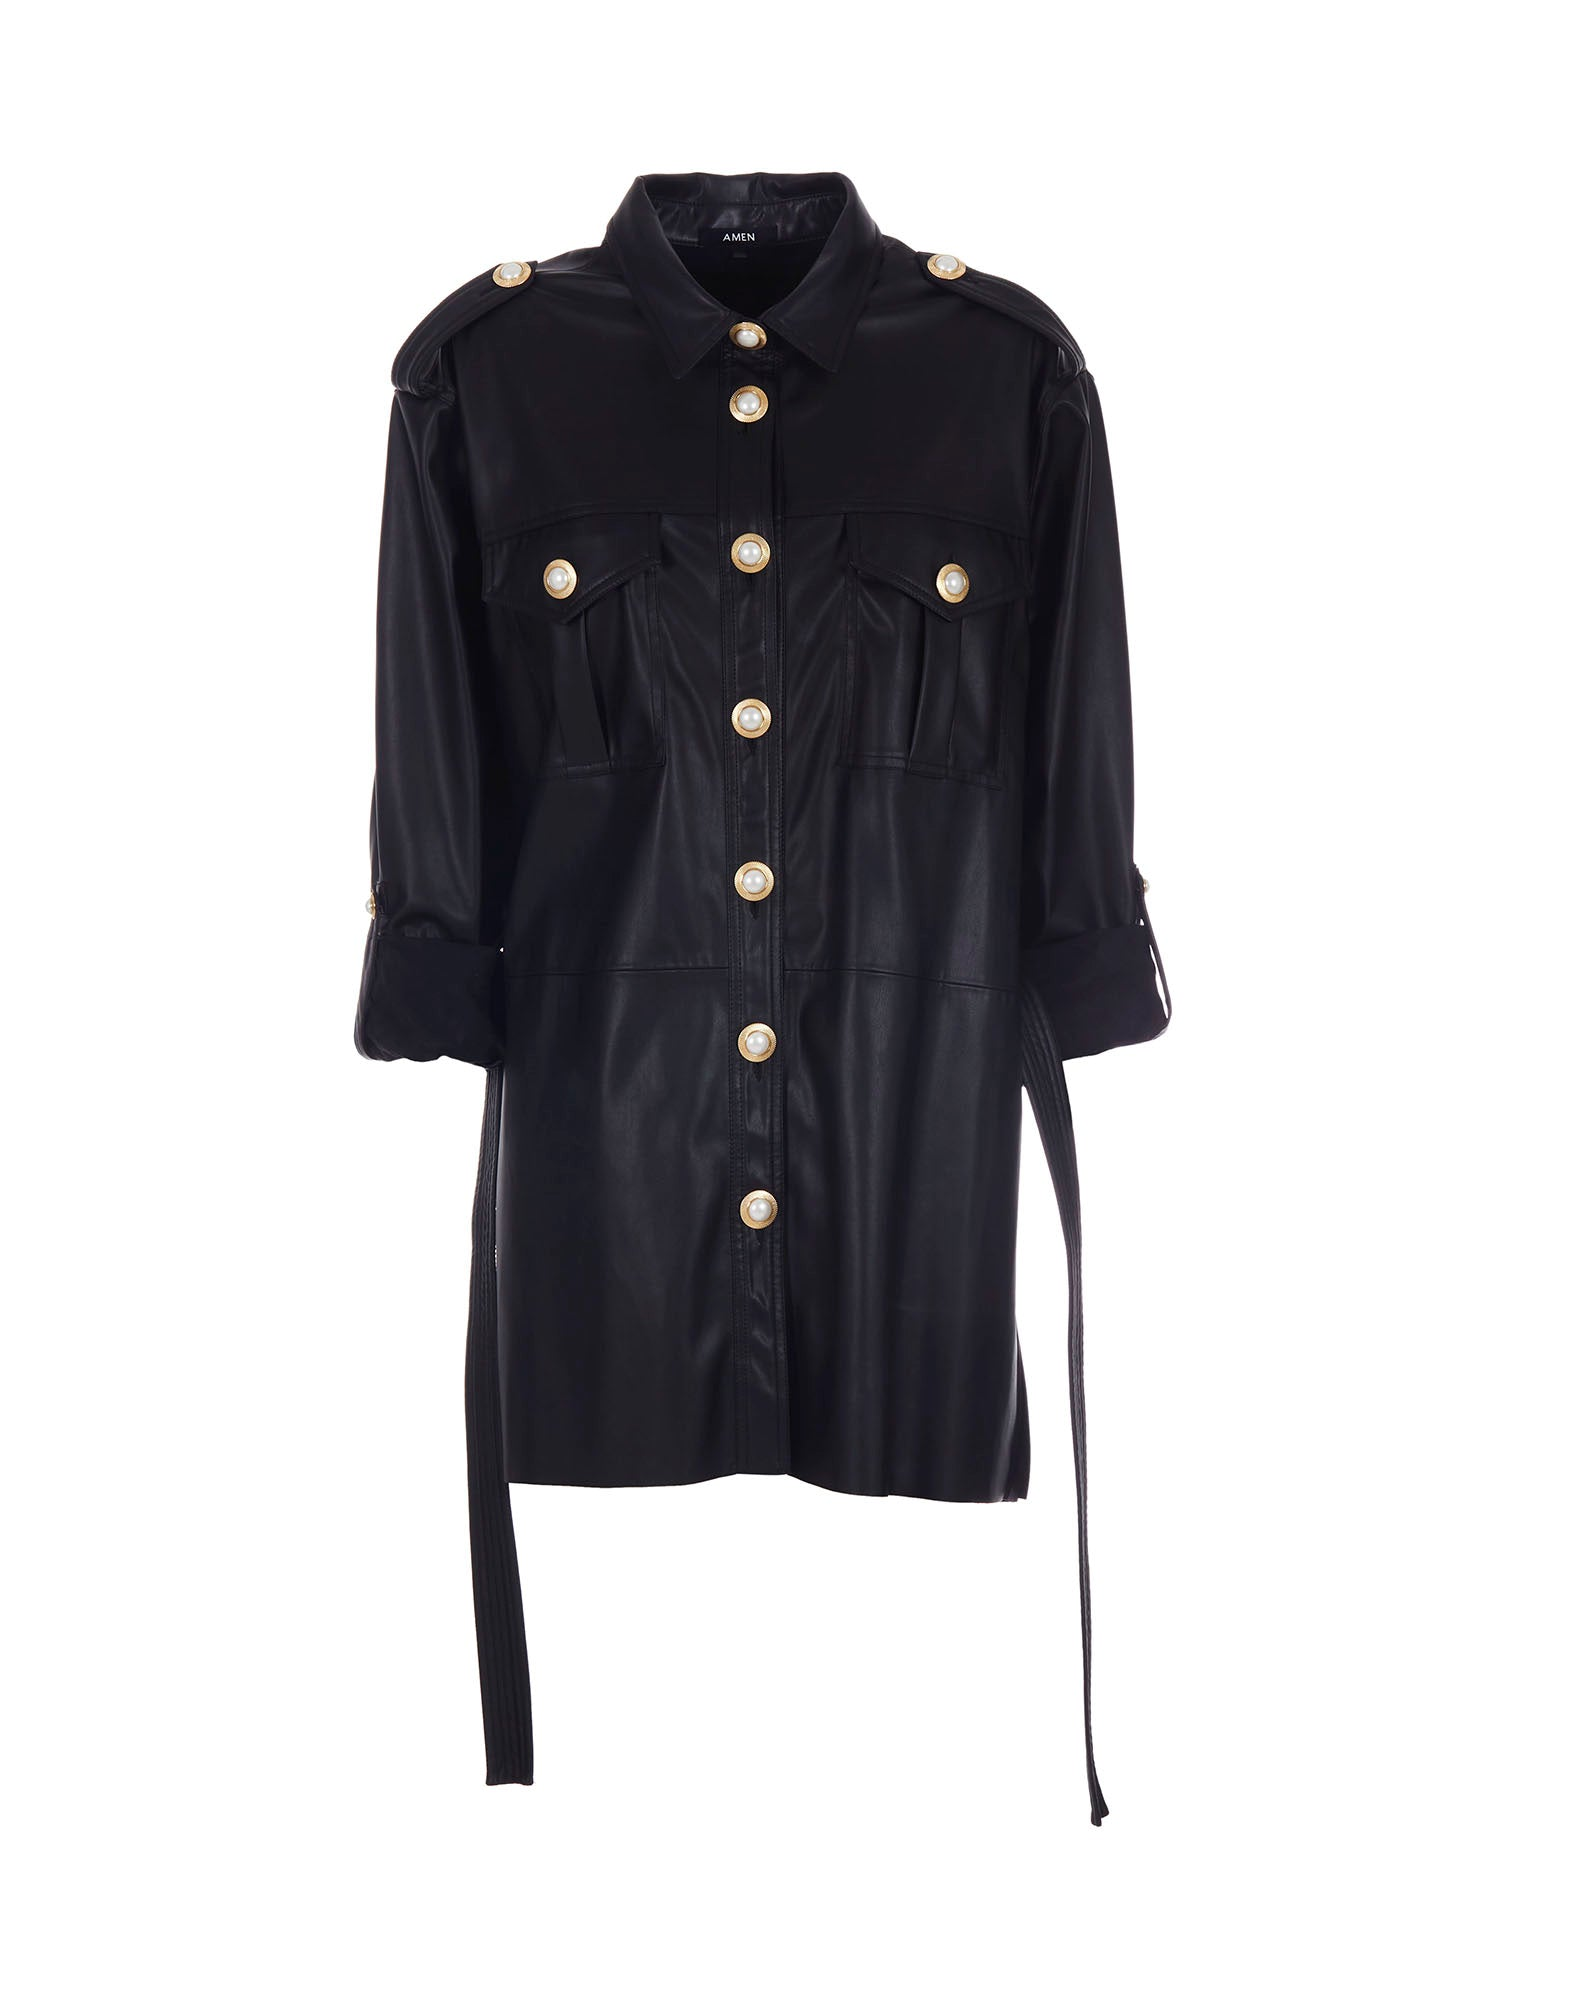 Faux-leather oversize shirt